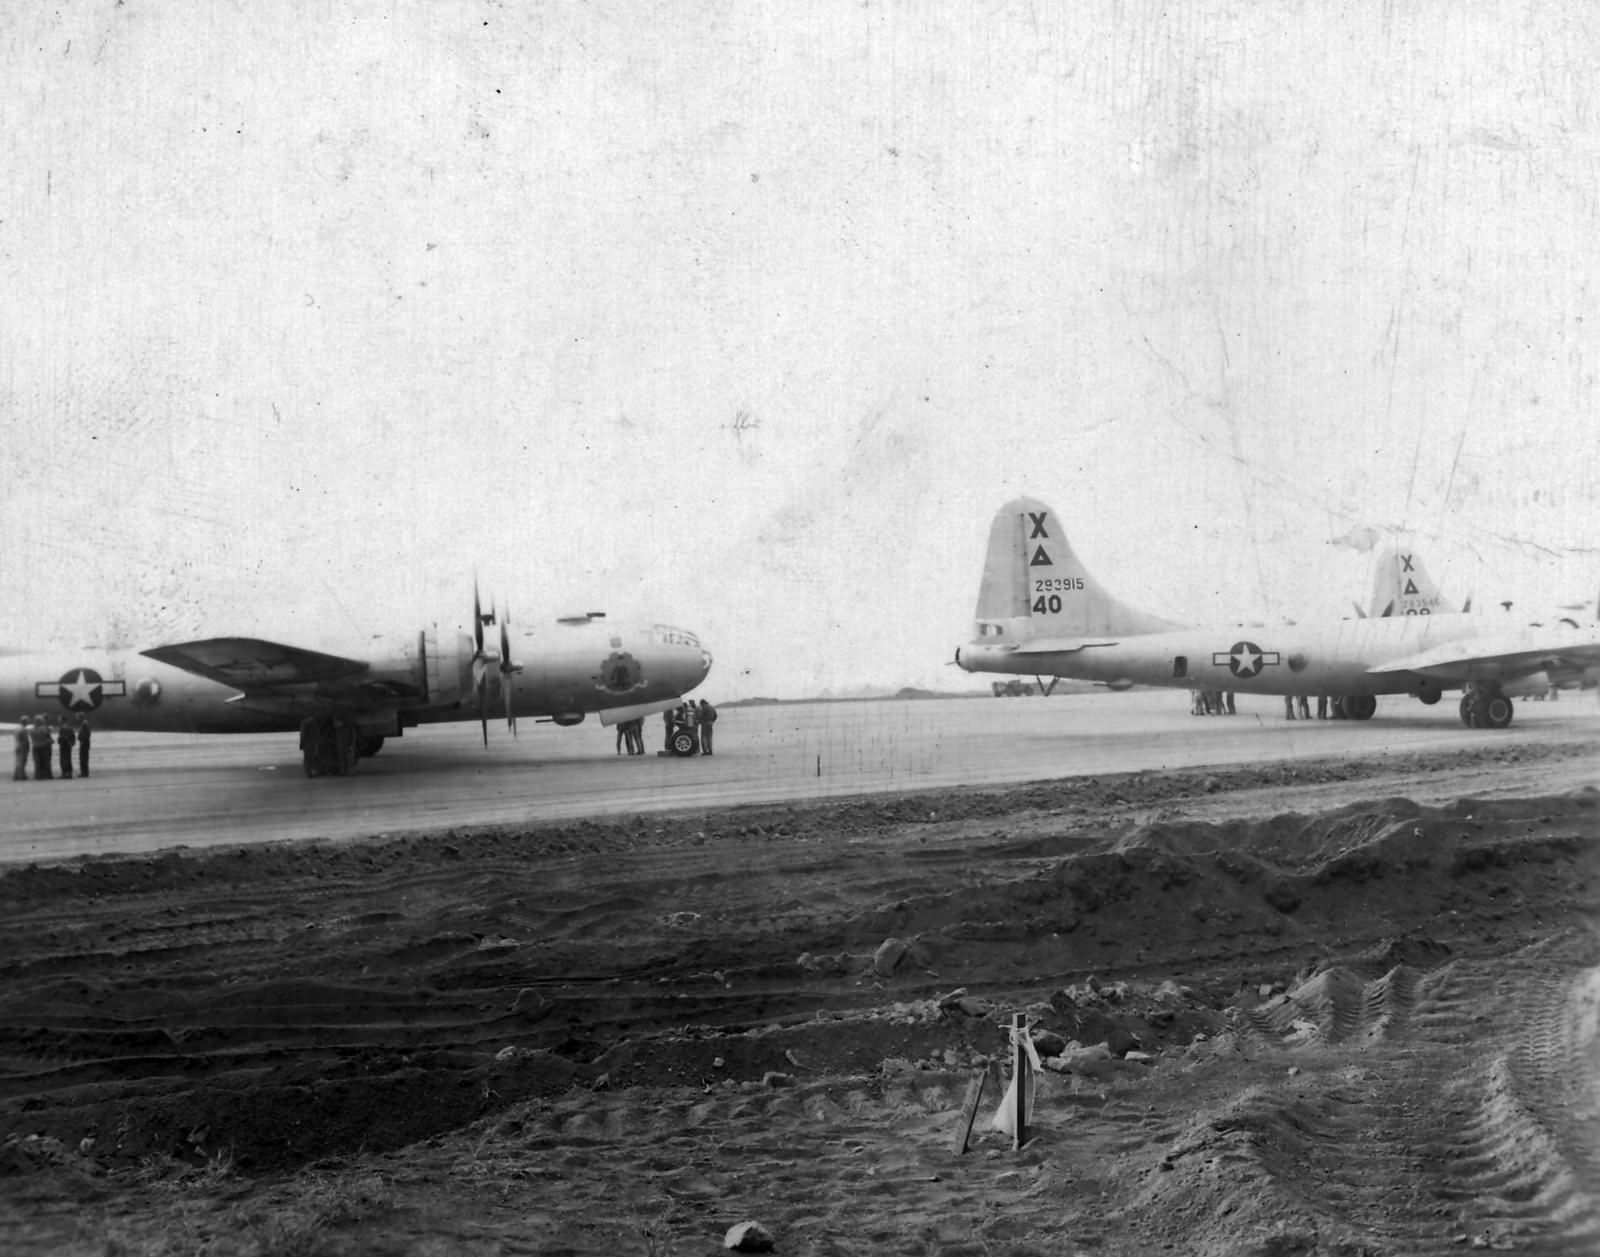 B-29 Superfortress bombers from 9th Bomb Group on Iwo Jima 1945